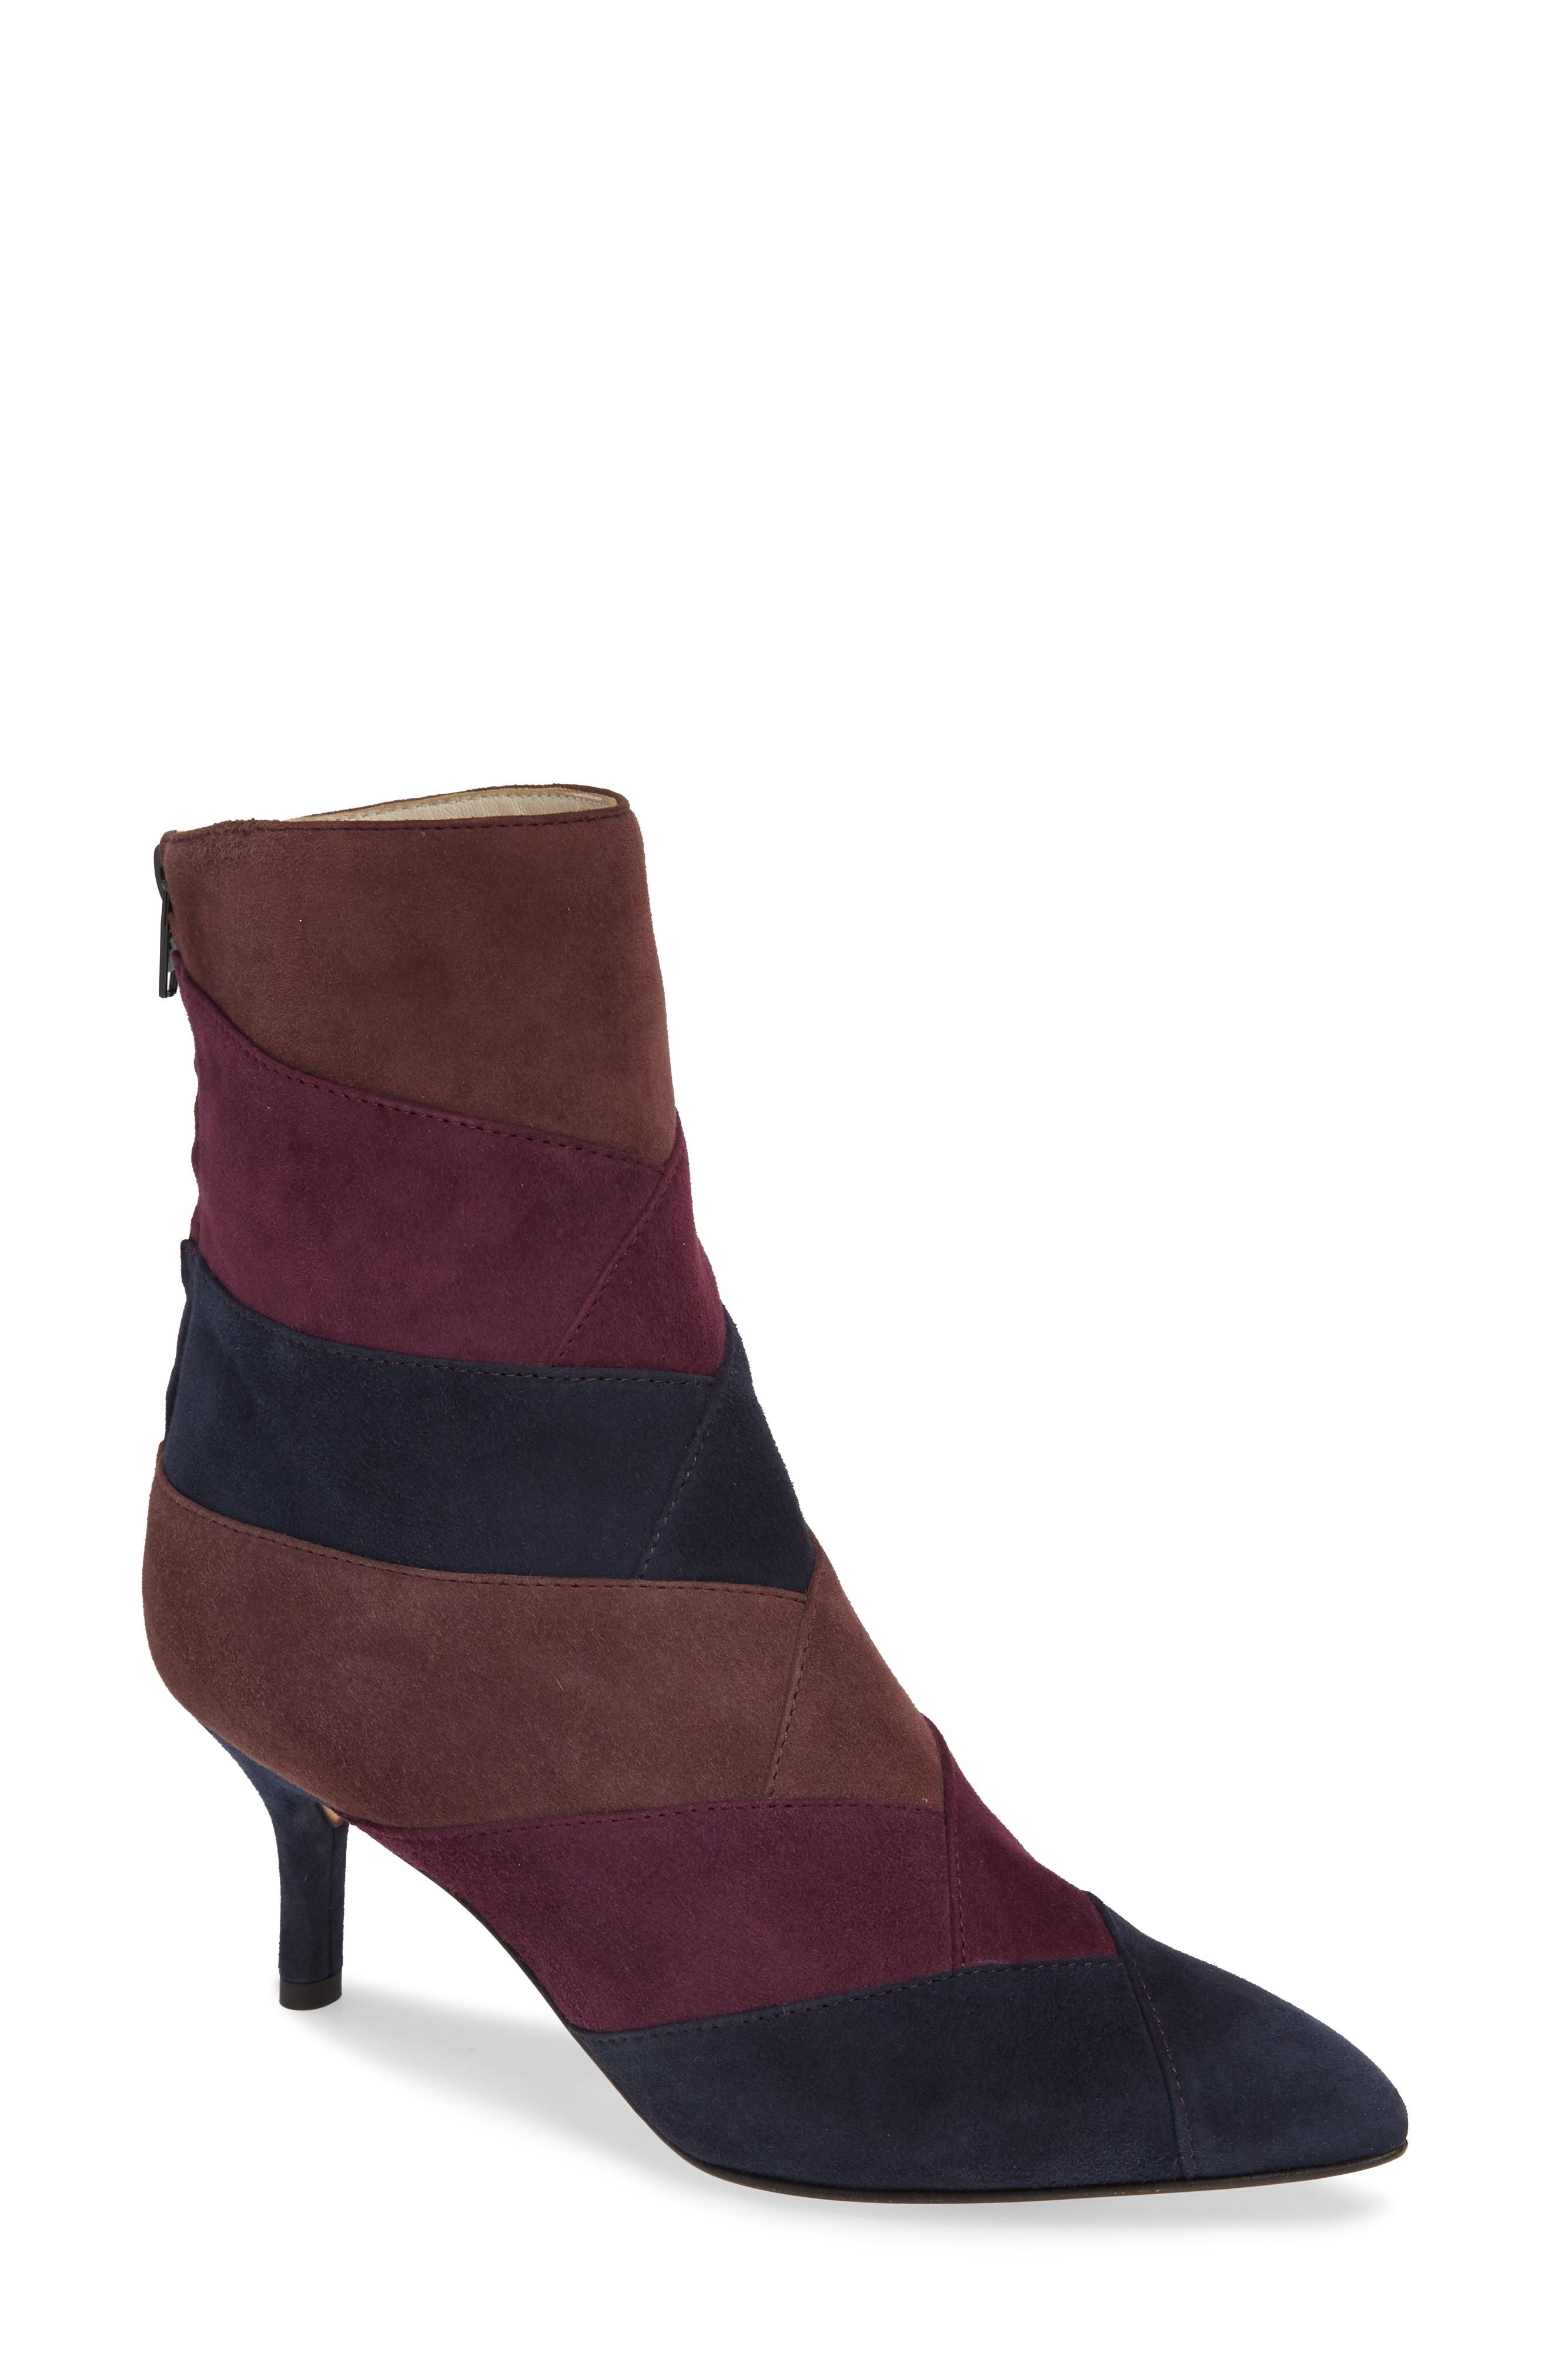 AMALFI BY RANGONI Pandora Colorblock Bootie in Navy Cashmere Suede